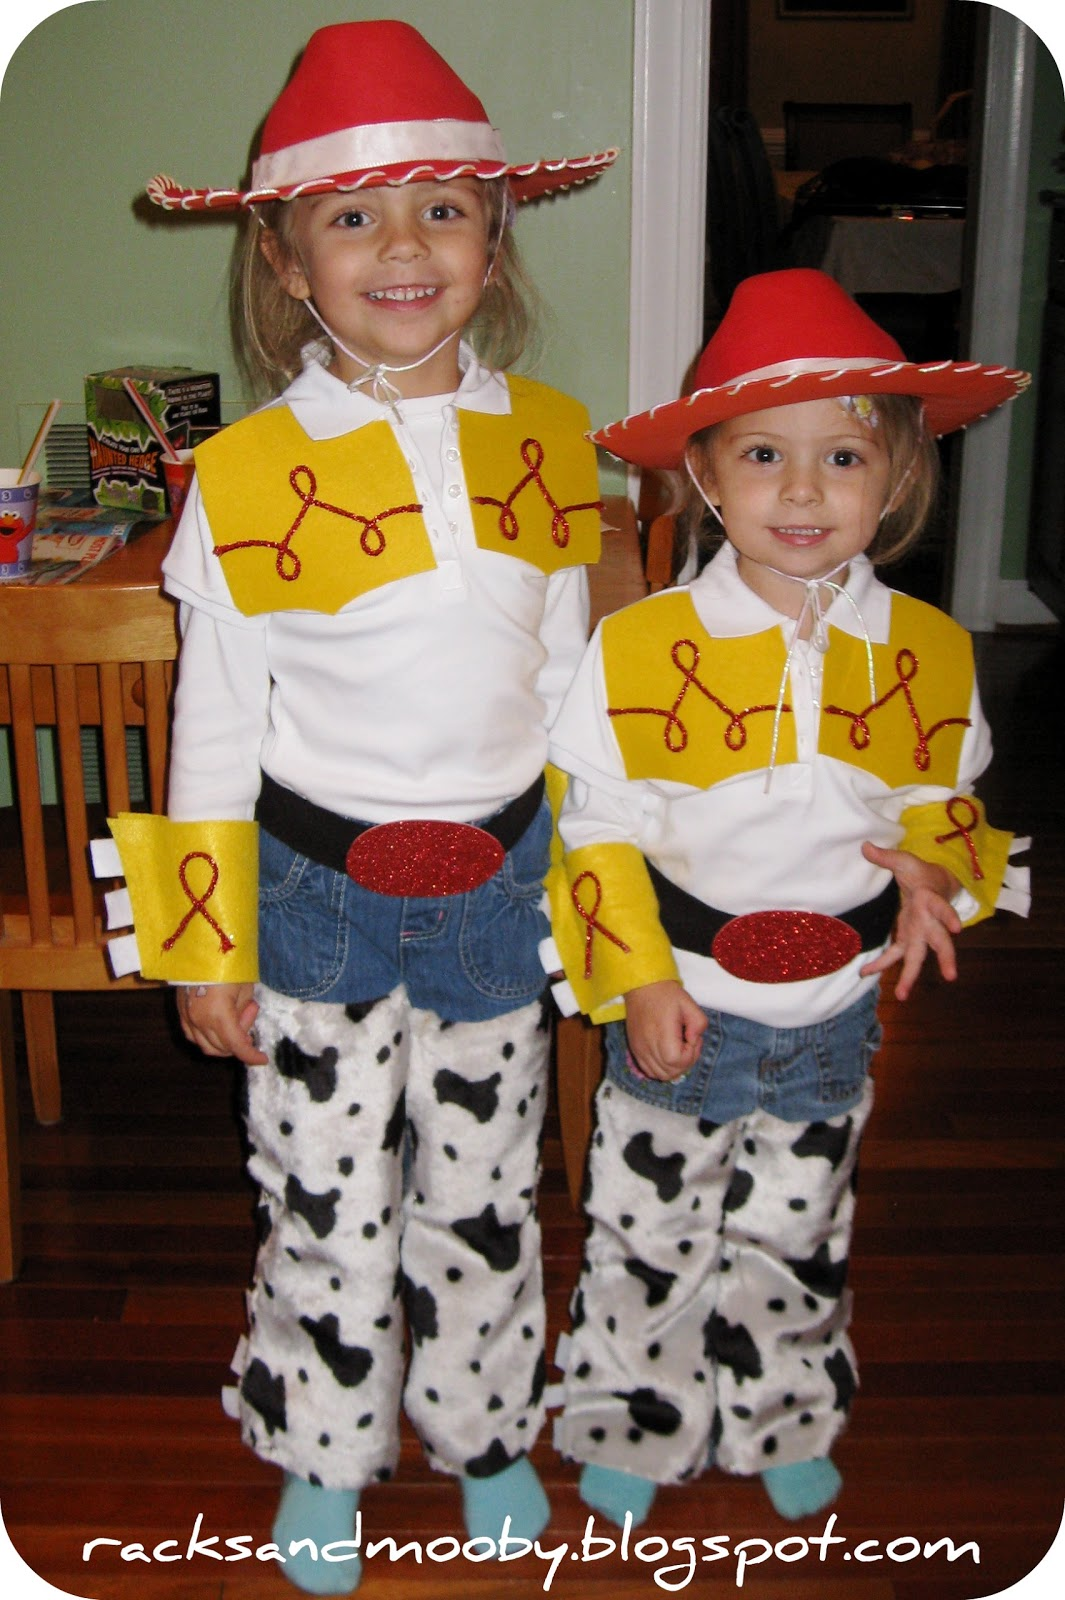 Racks and mooby diy jessie toy story toddler costume no sewing sweetpea and boogey as jessie from toy story halloween 2010 solutioingenieria Images